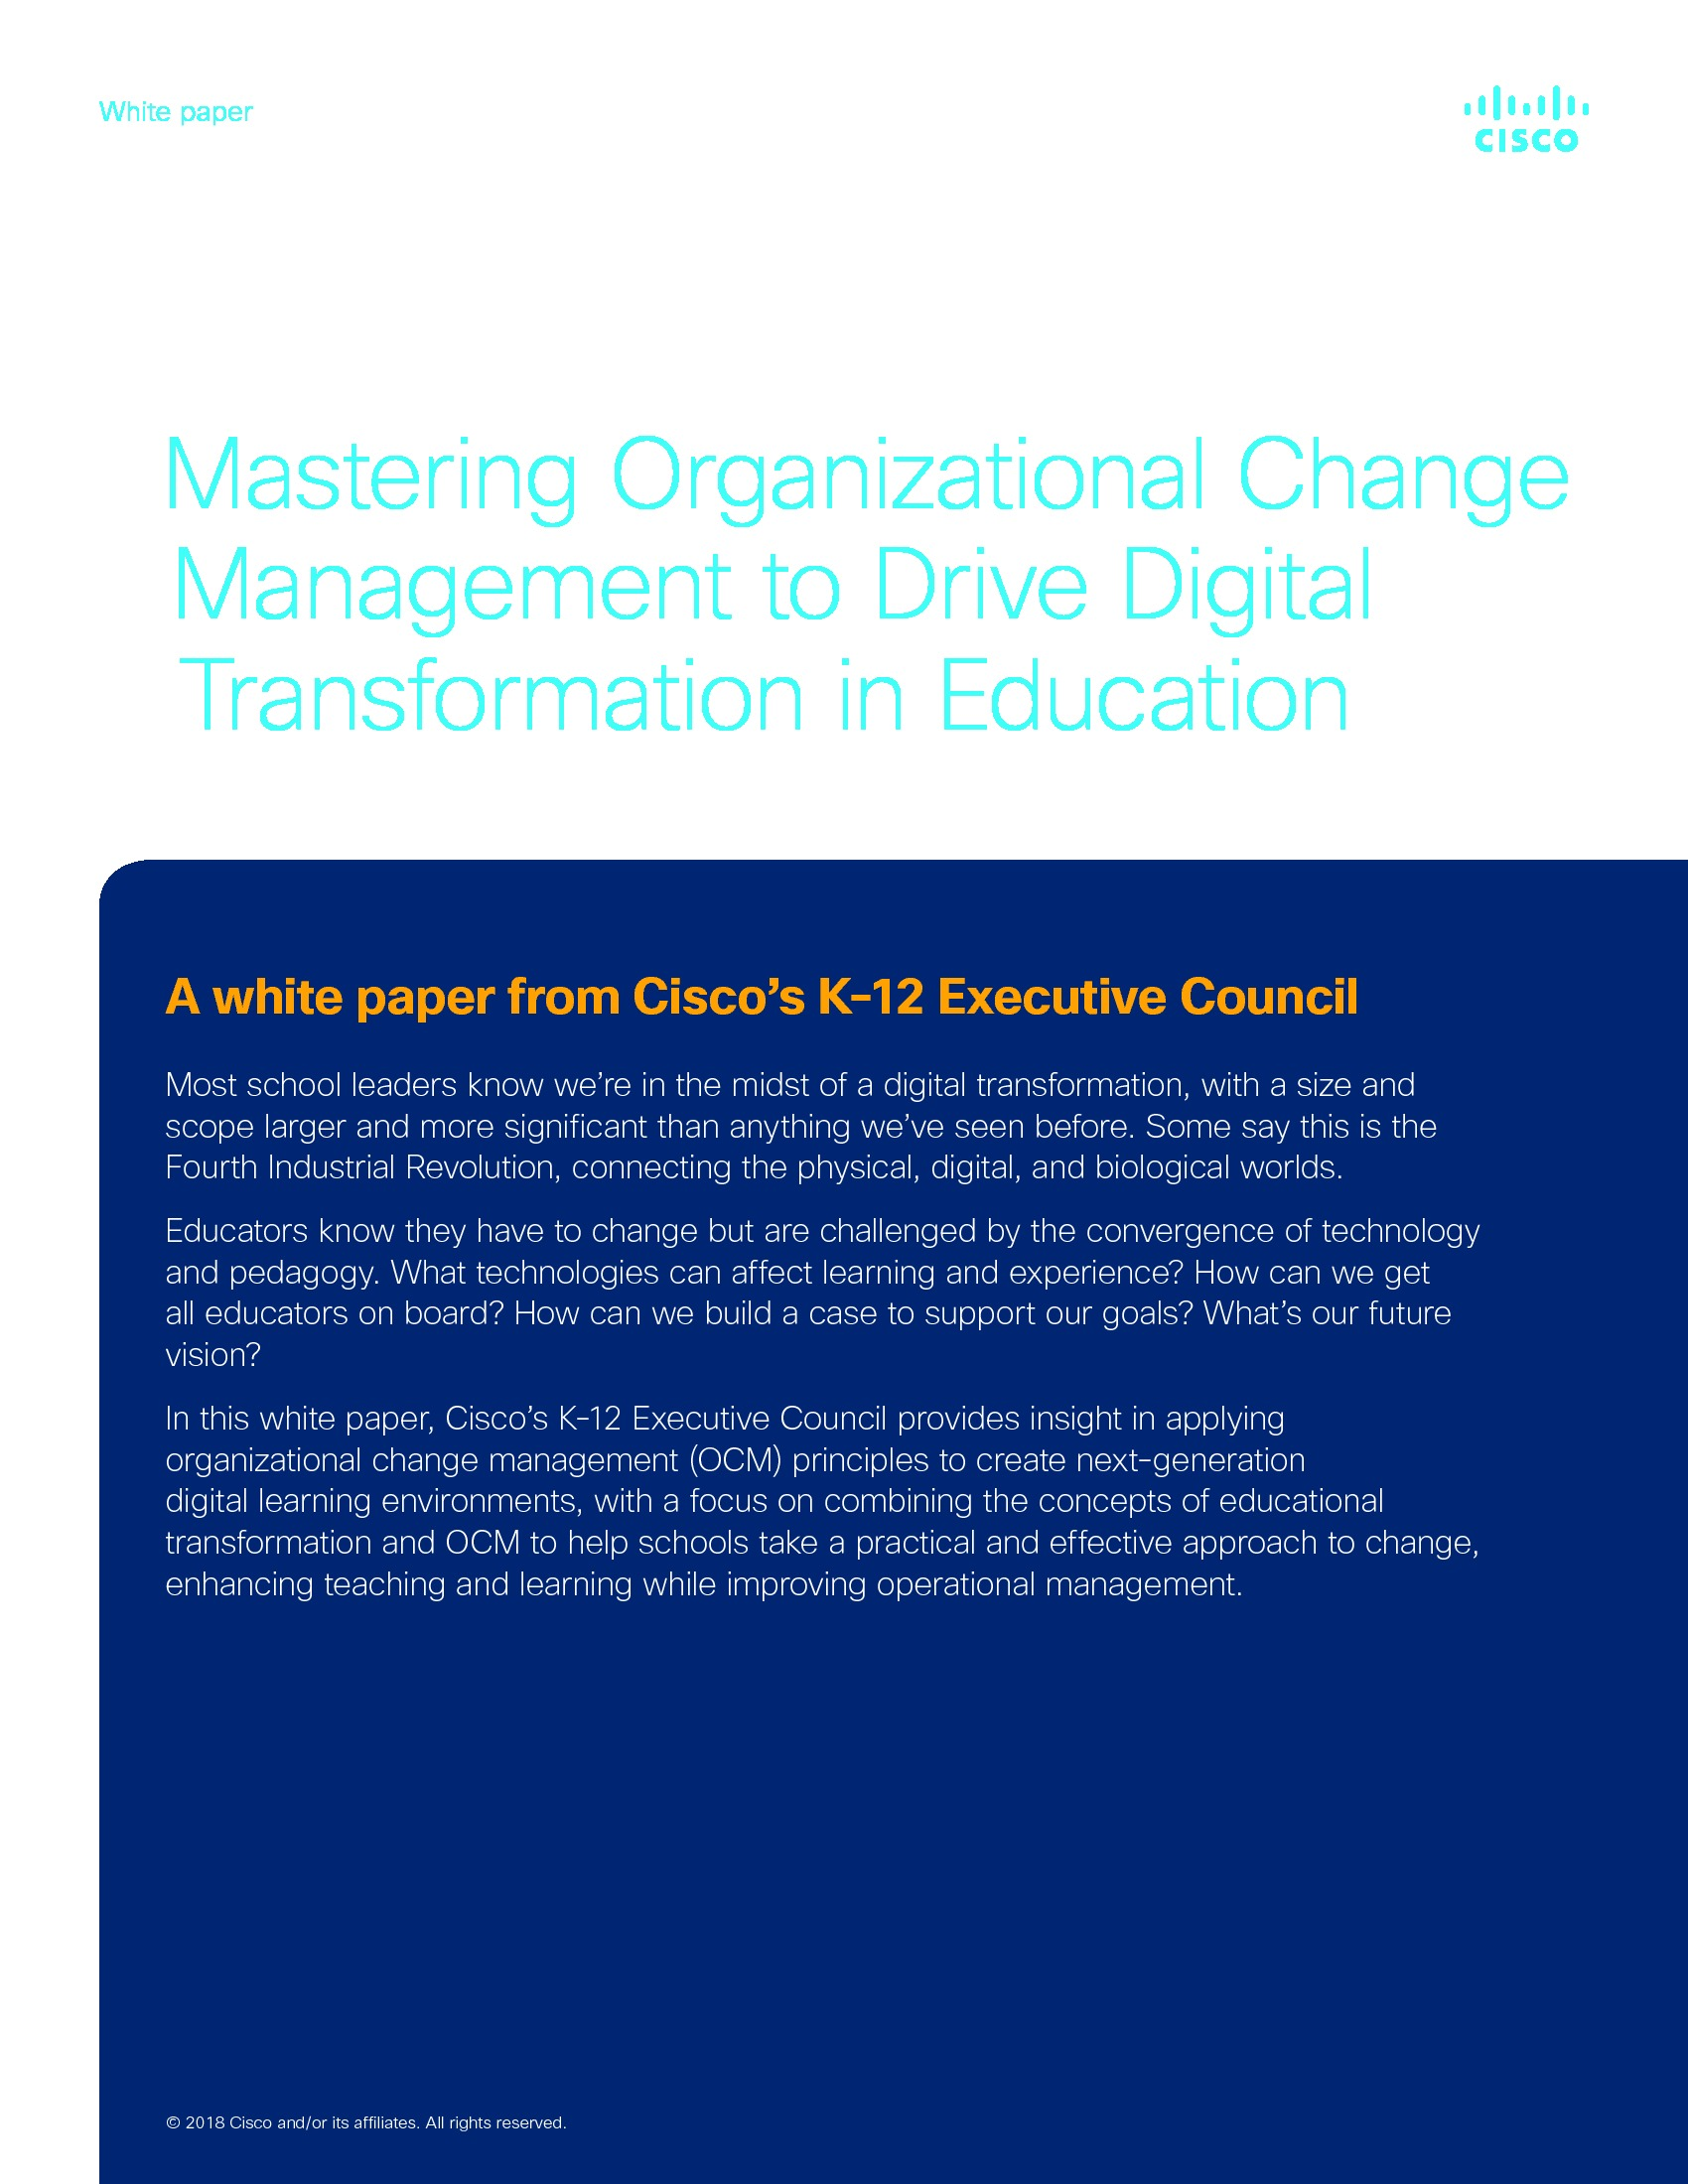 CDE - Cisco - Client Supplied - 180508 - Mastering Organizational Change Manage